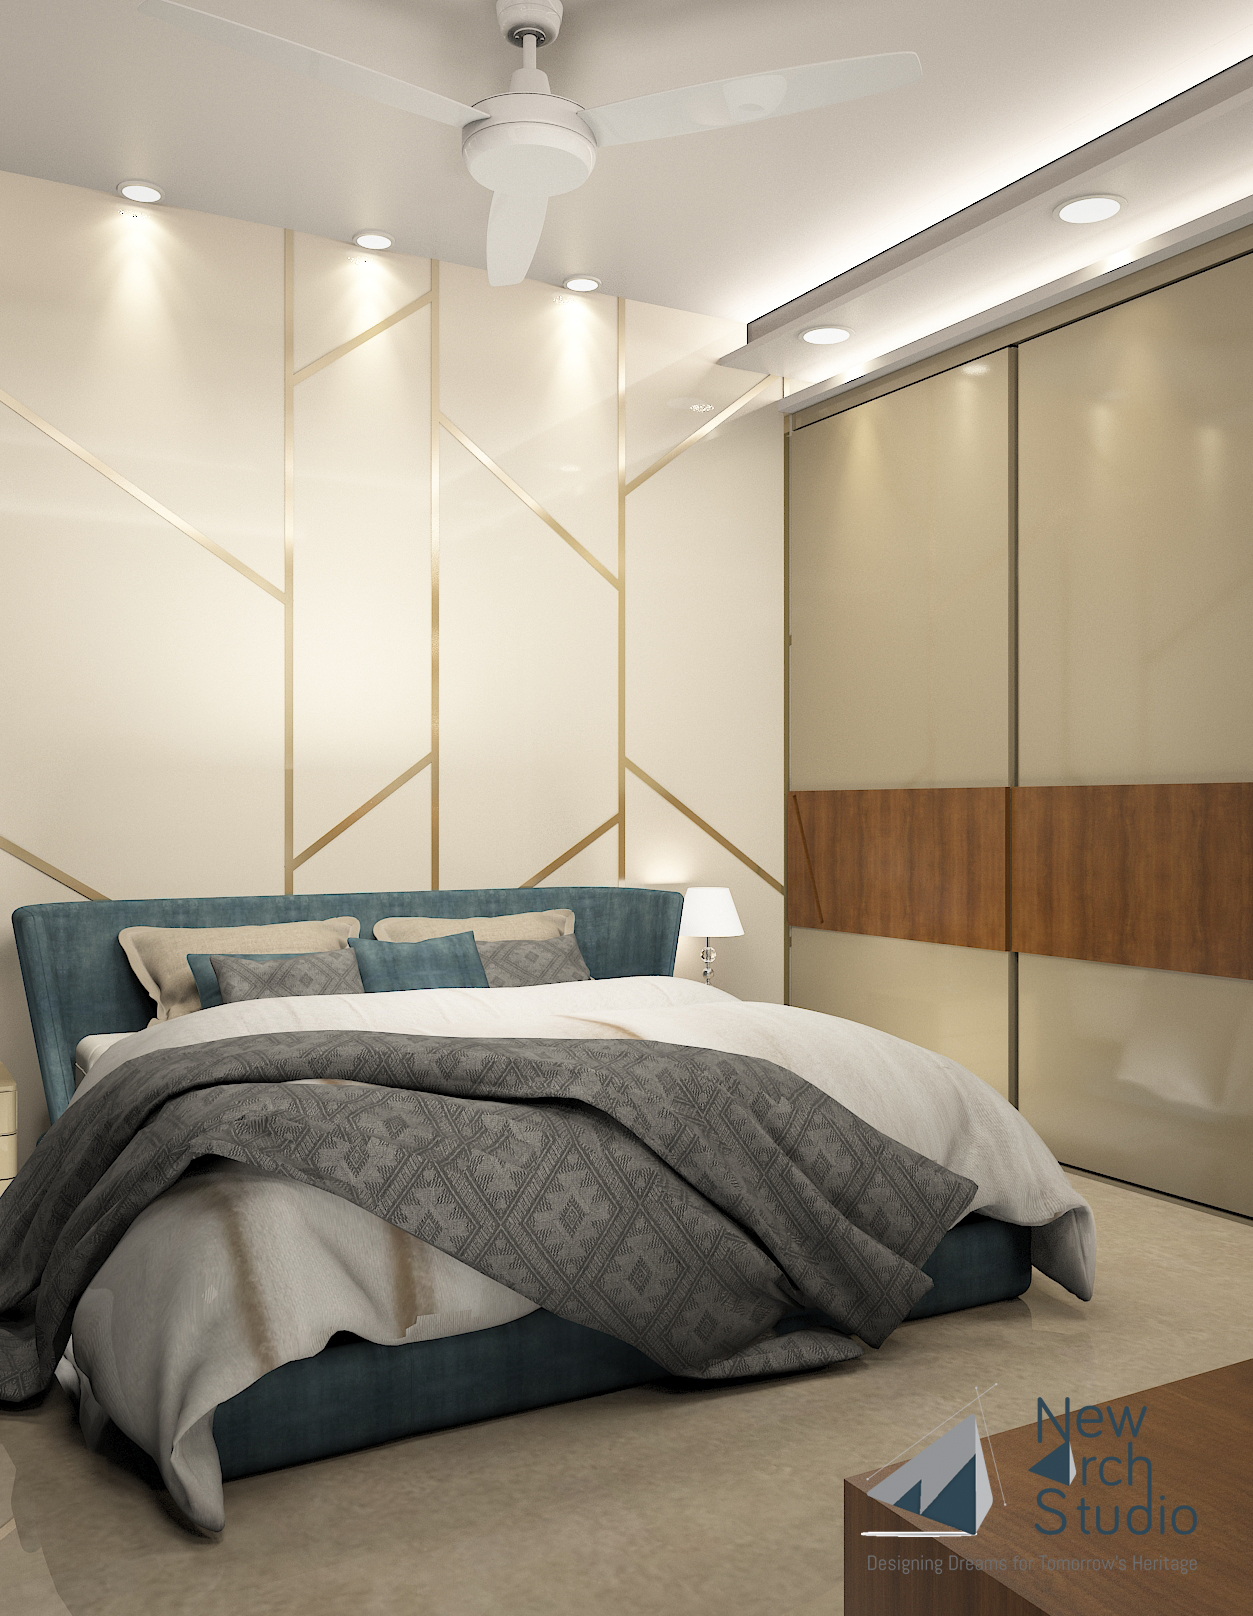 Patel Nagar Residential Interior Design Project Done By New Arch Studio